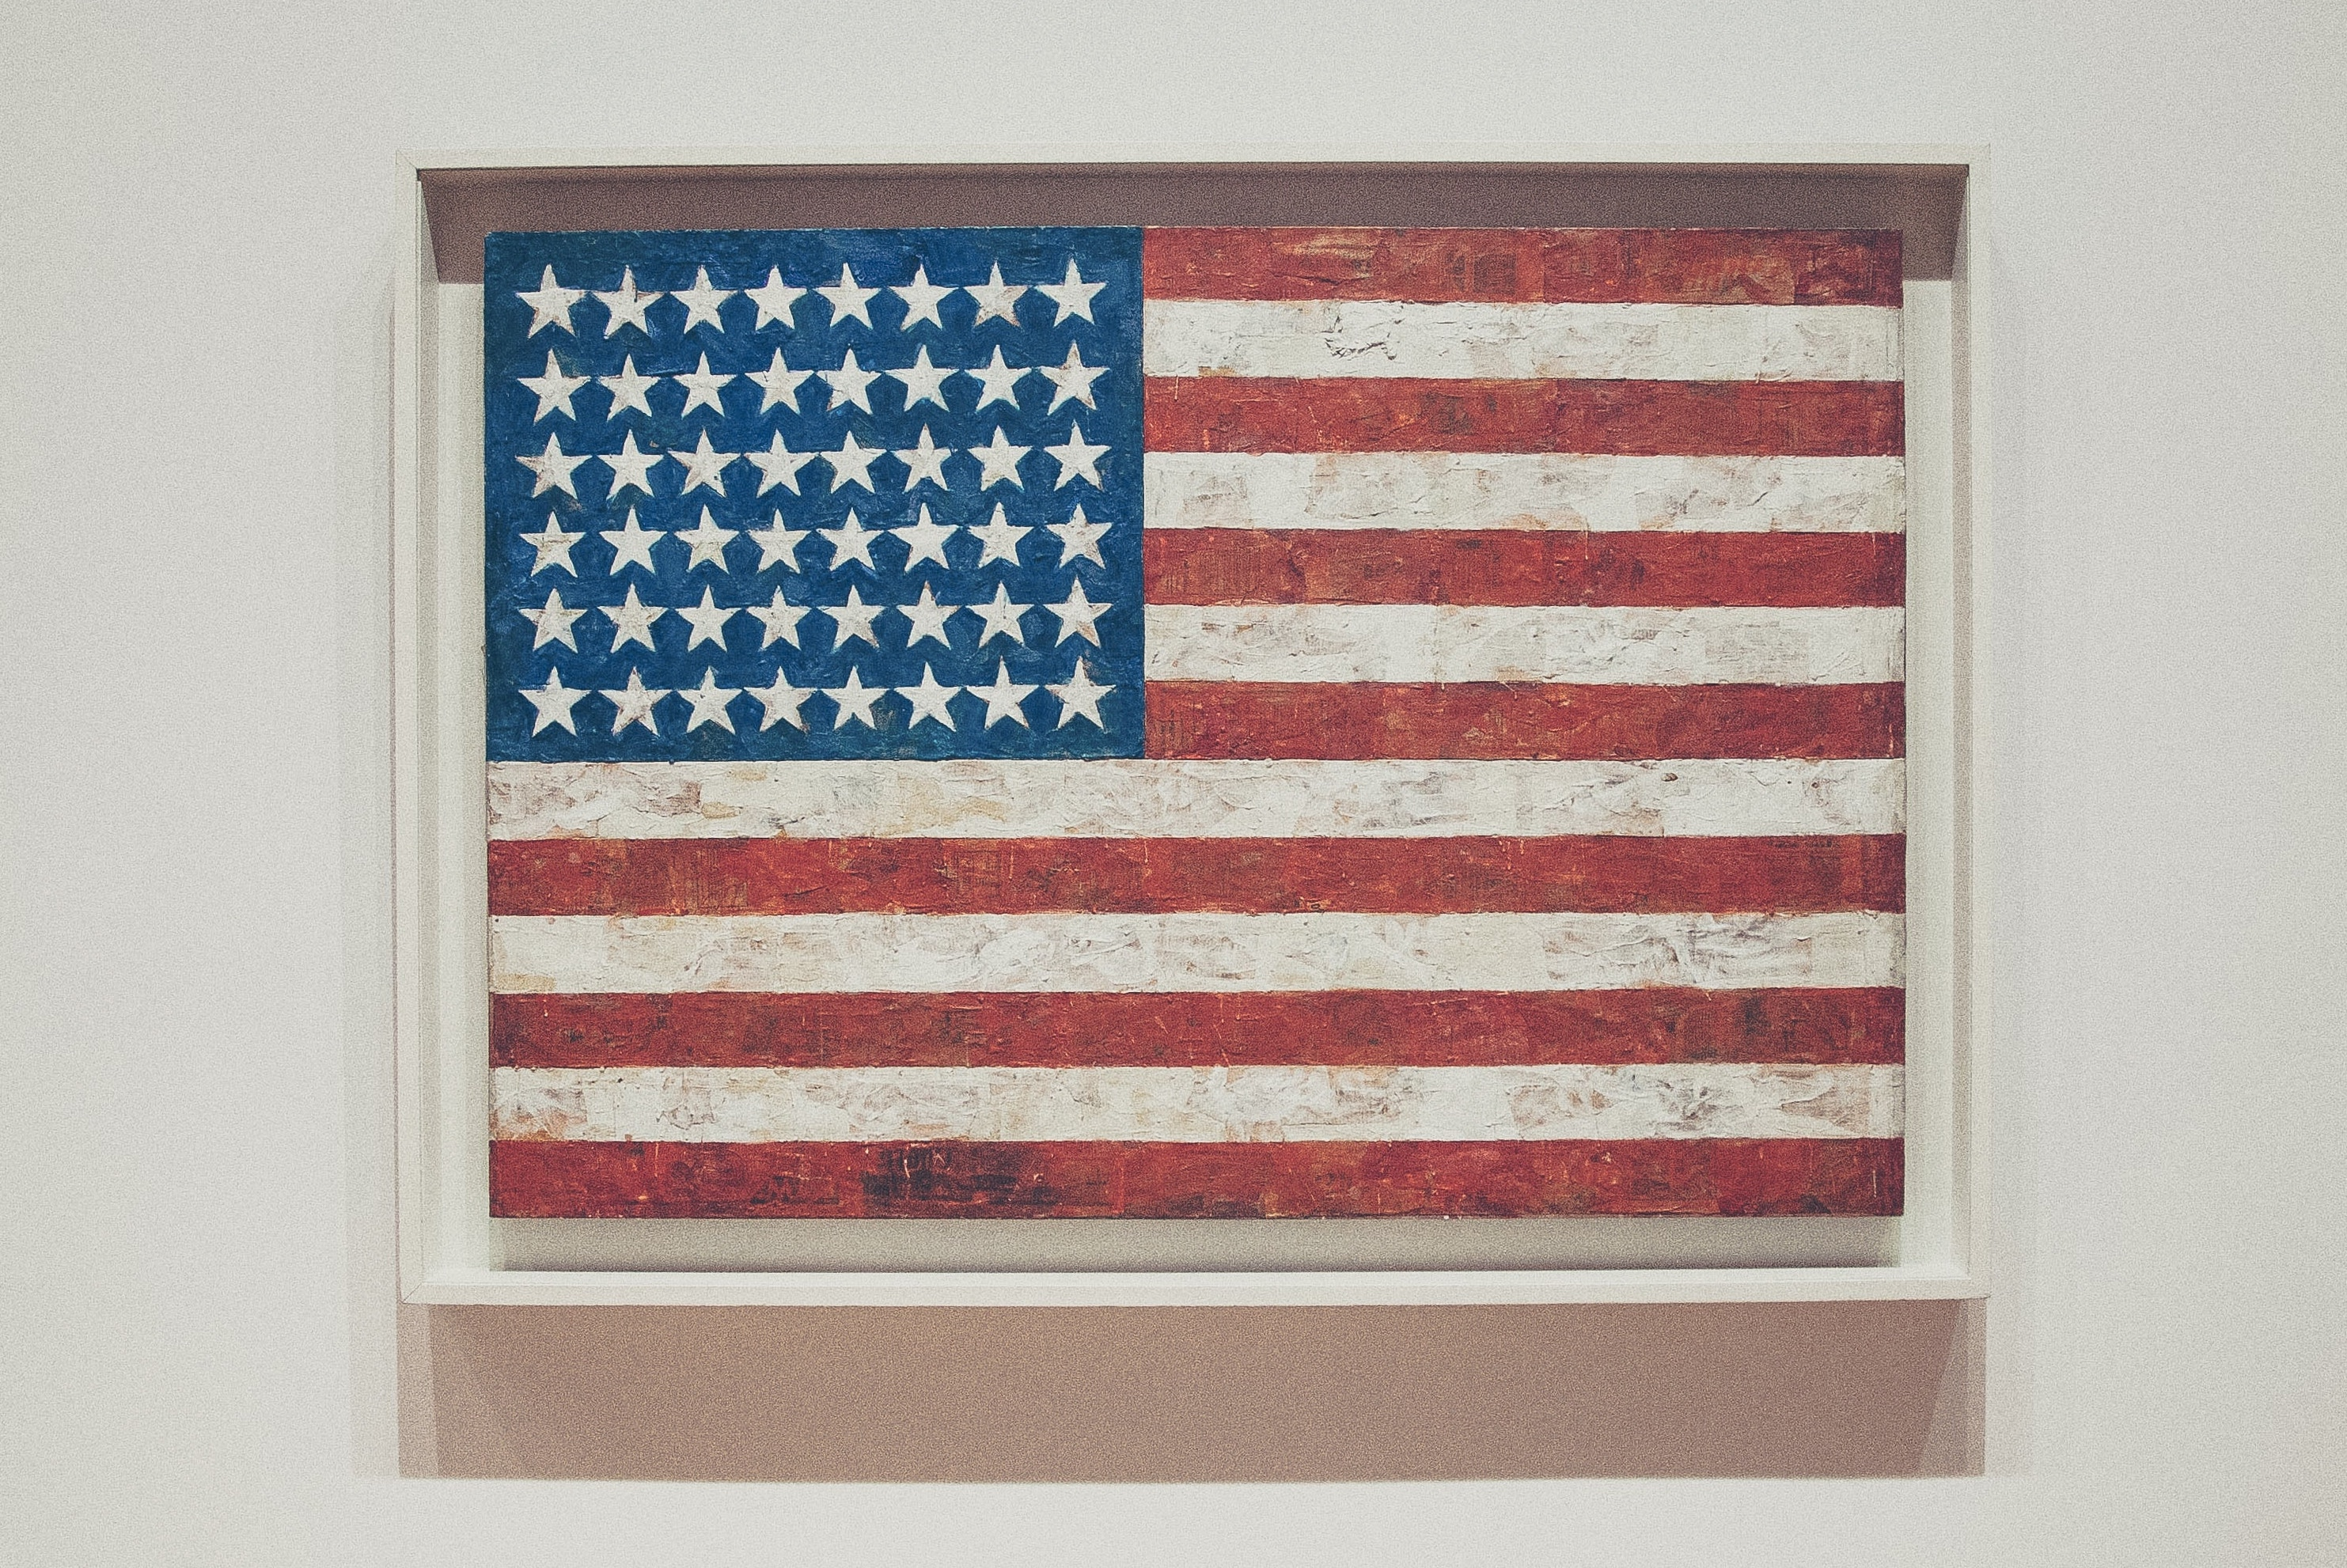 American flag painting at the Whitney Museum